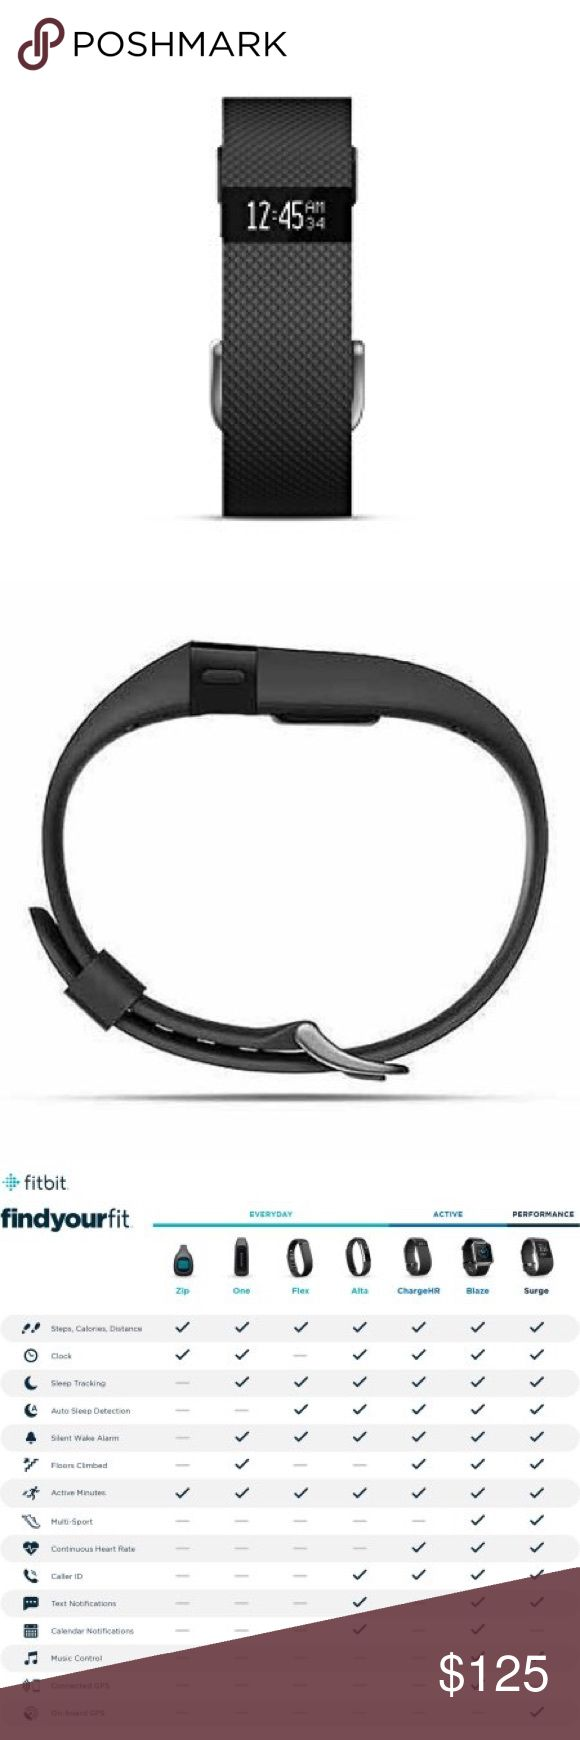 Fitbit Charge HR BRAND NEW Brand new Fitbit Charge HR! I recently bought this watch and have decided I rather buy an Apple Watch, but I do not have the receipt to return this Fitbit. Selling with the charger and have not opened box. Feel free to contact me with questions! fitbit Accessories Watches